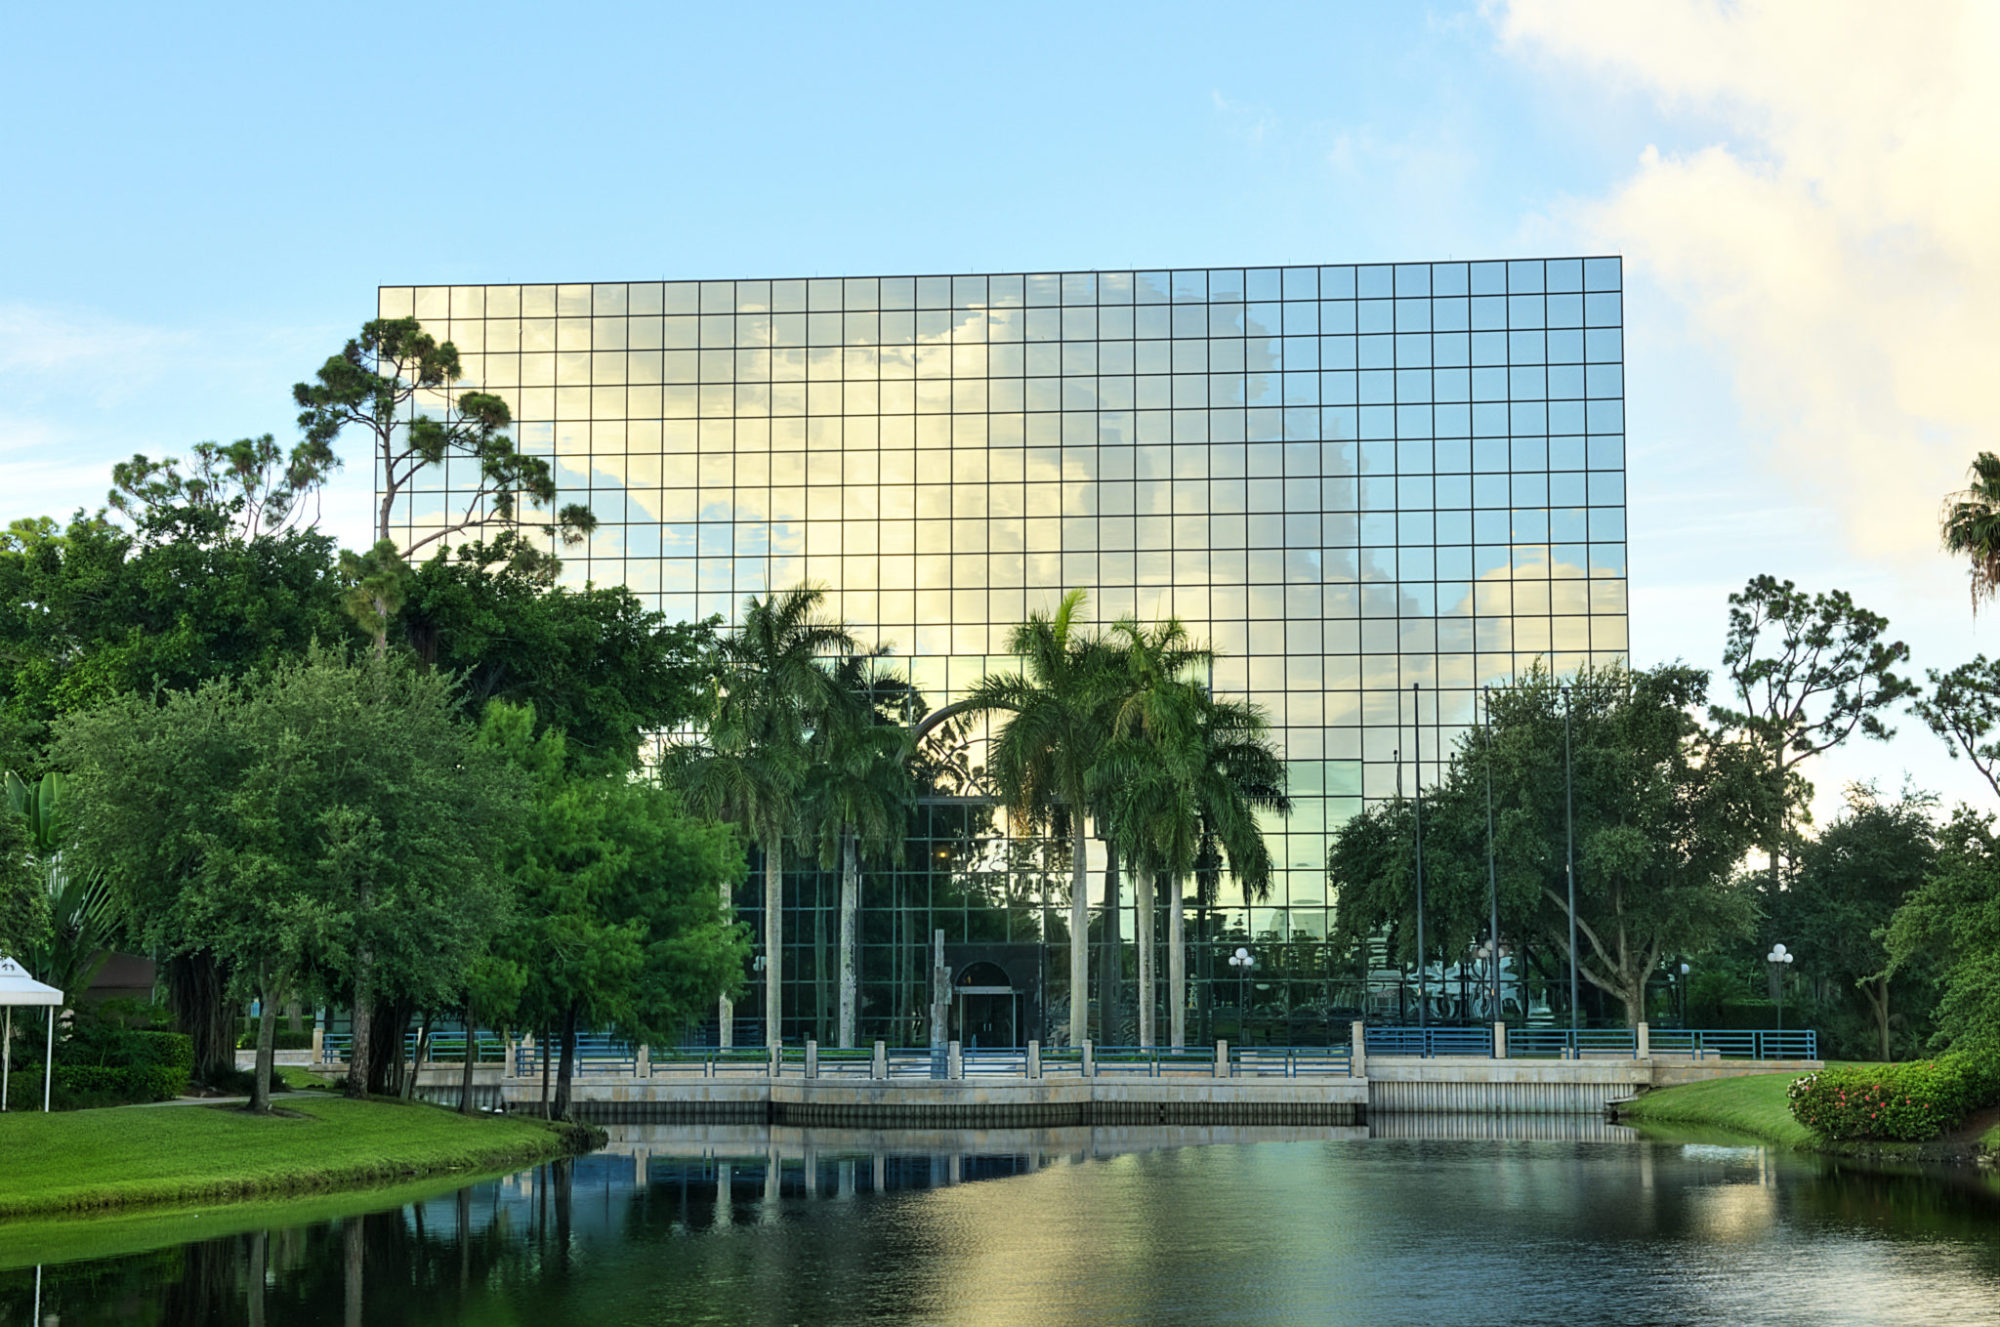 PEBB Enterprises - Boca Corporate Office, Boca Raton, Florida 3